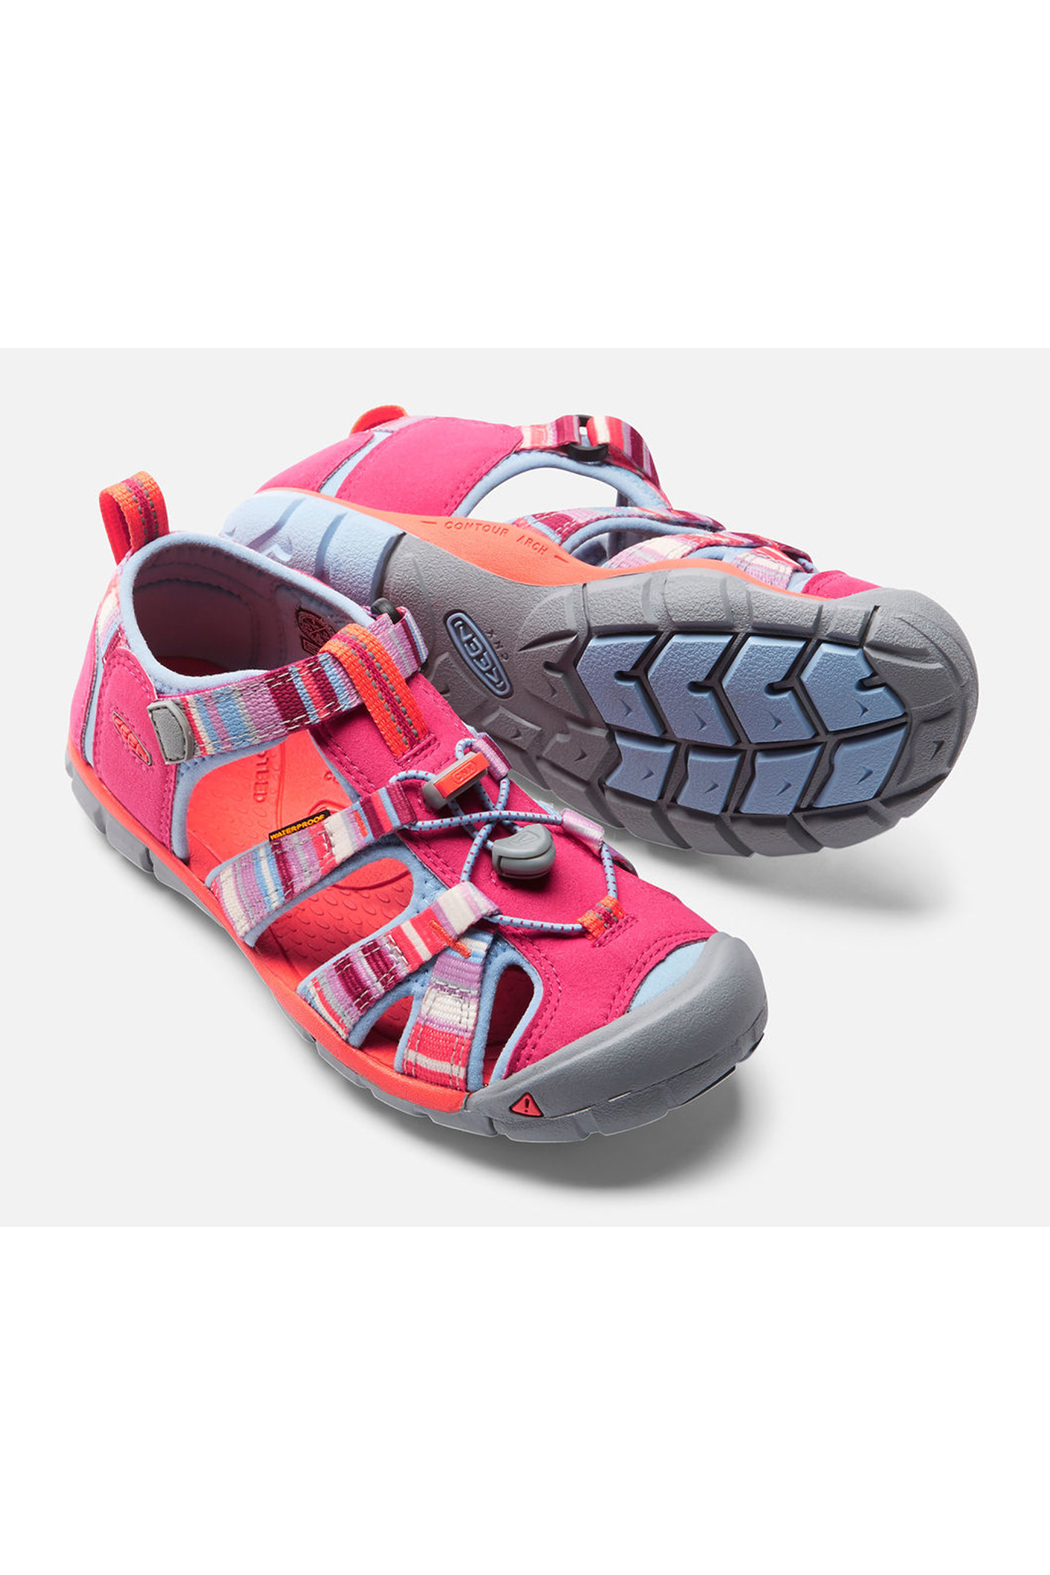 Keen Seacamp II CNX Sandal Tots - Front Cropped Image